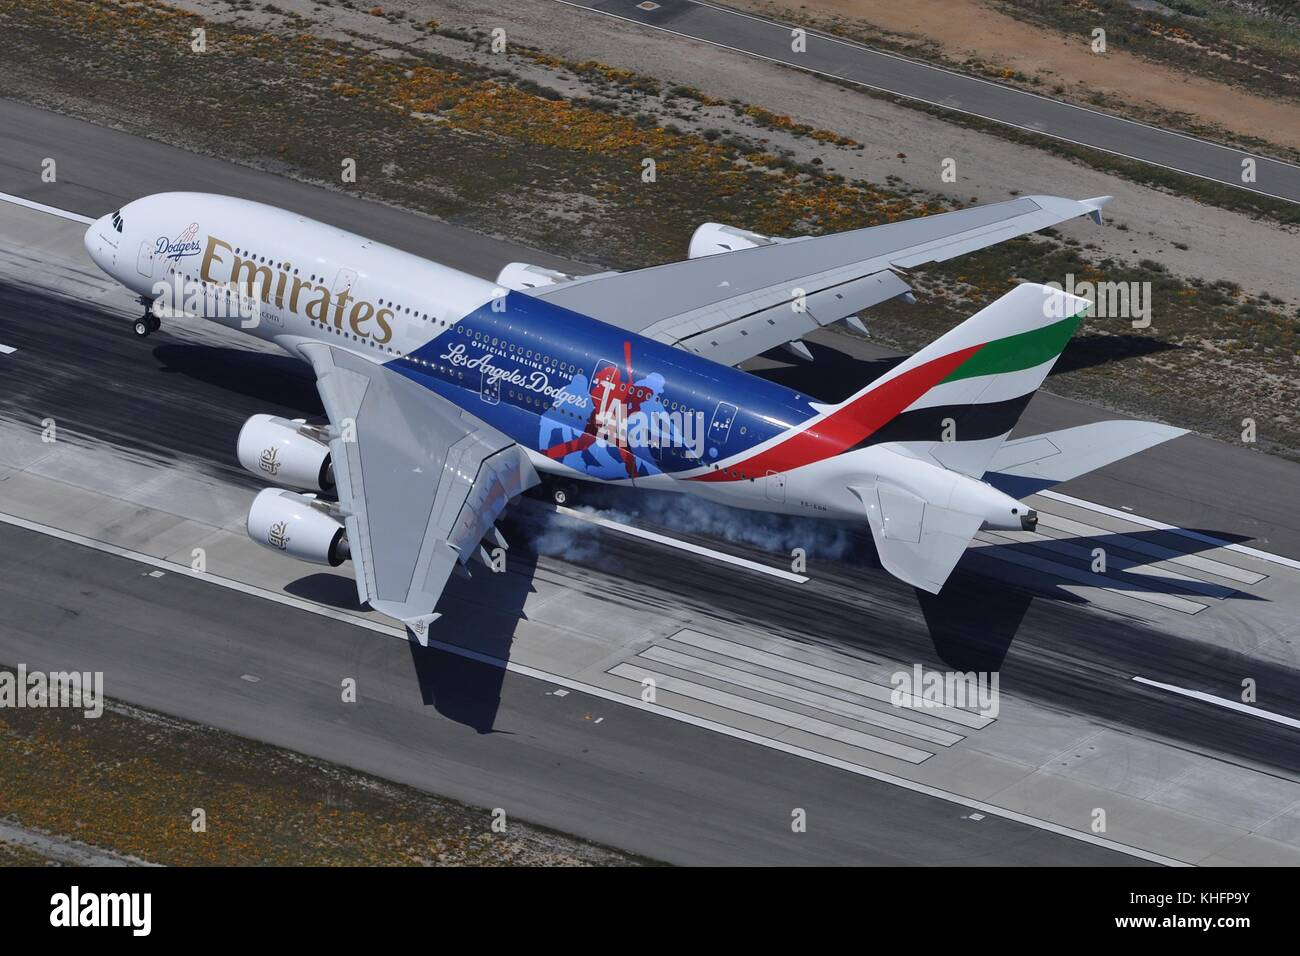 Dodgers stock photos dodgers stock images alamy emirates airbus a380 800 la dodgers at lax stock image buycottarizona Image collections